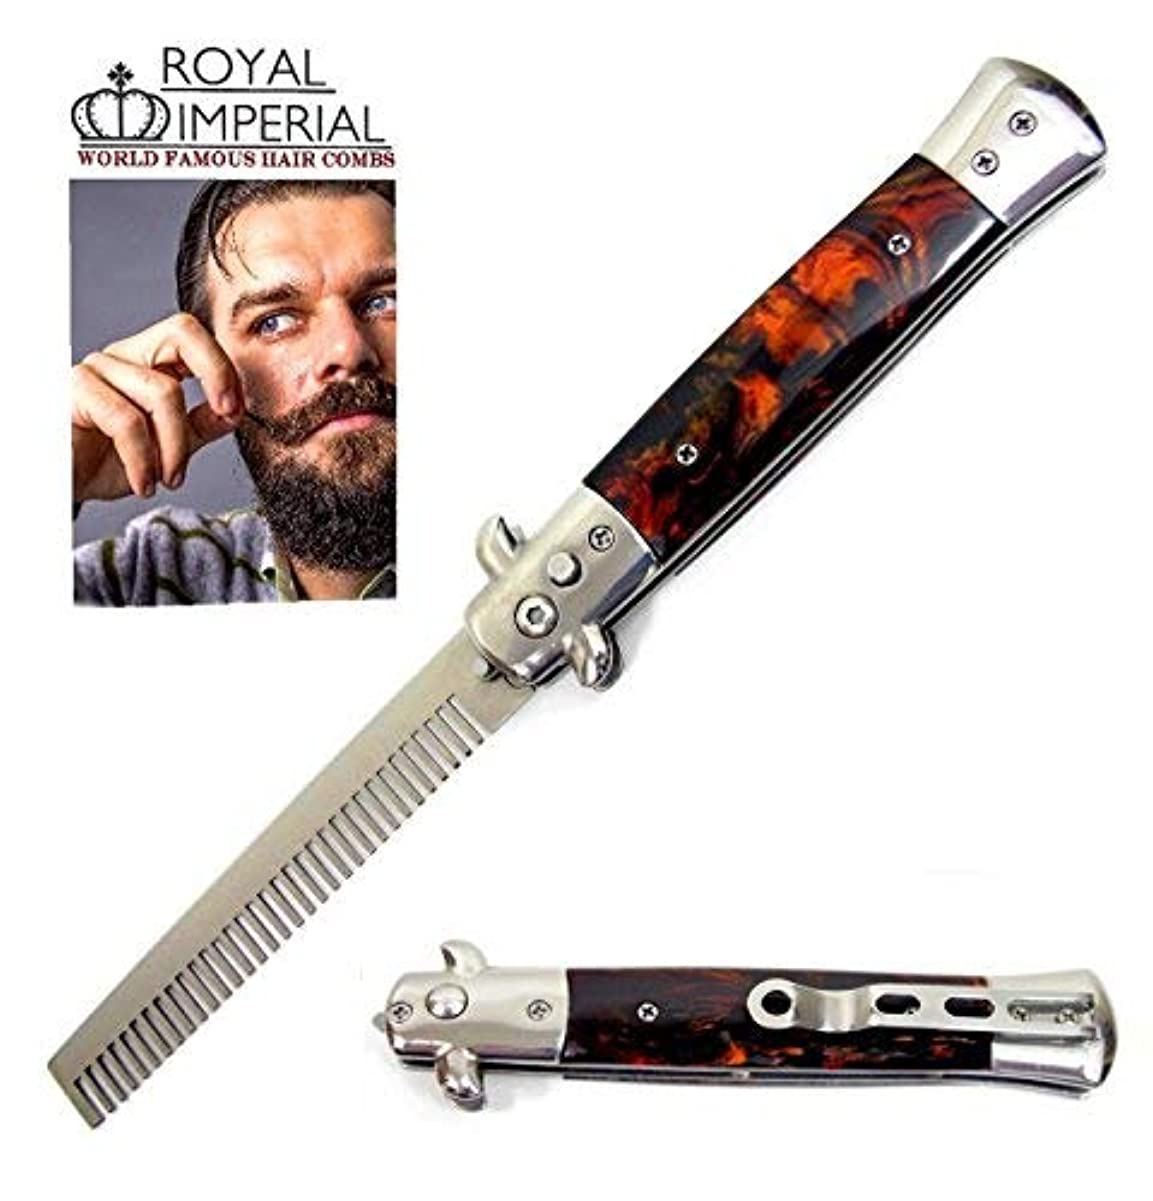 聞きます不条理戻るRoyal Imperial Metal Switchblade Pocket Folding Flick Hair Comb For Beard, Mustache, Head TORTOISE SHELL FIRE...